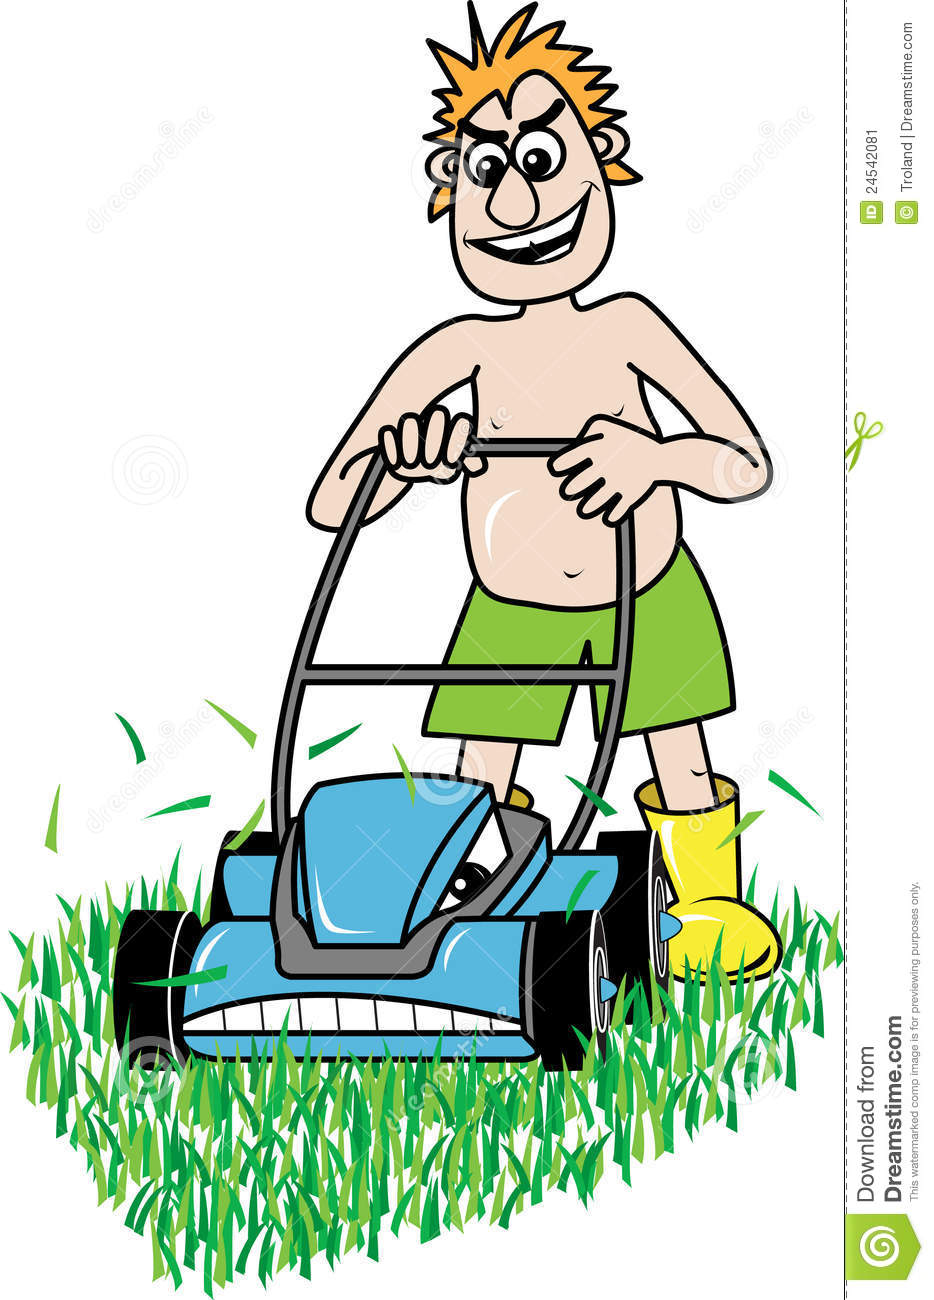 Man Mowing Lawn Clipart Lawn Mowing